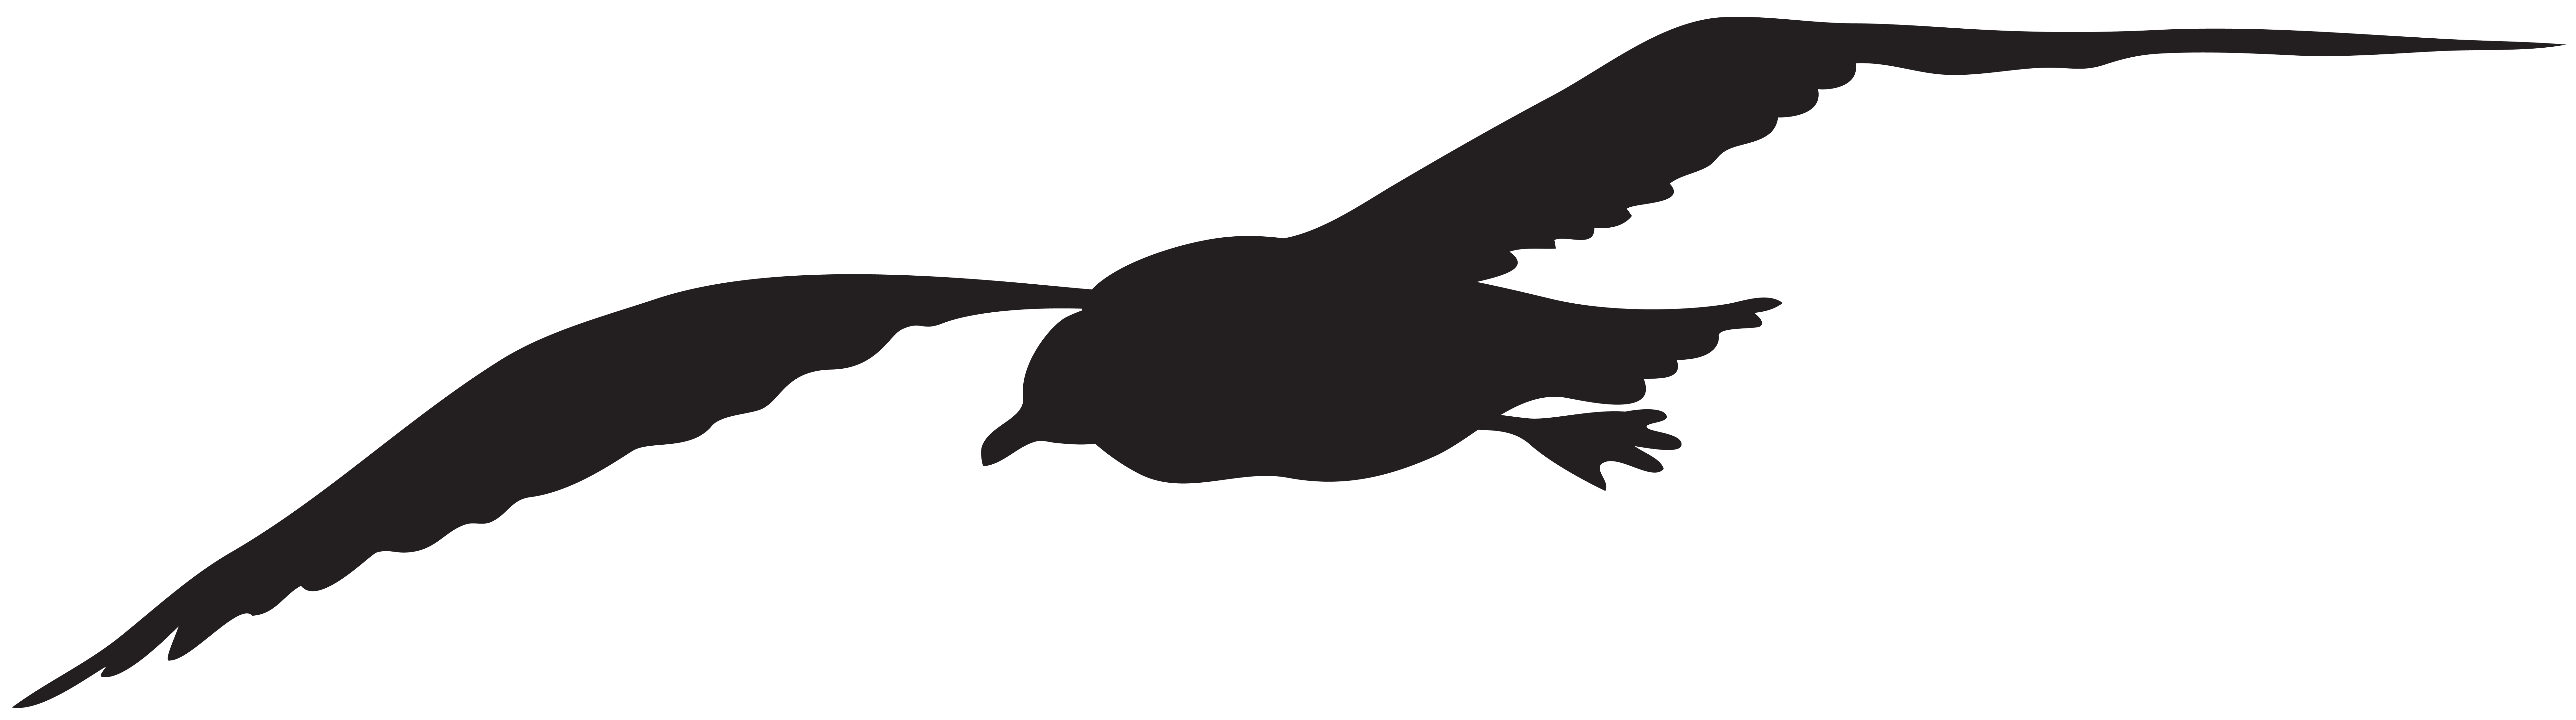 banner freeuse stock Silhouette at getdrawings com. Seagull clipart.